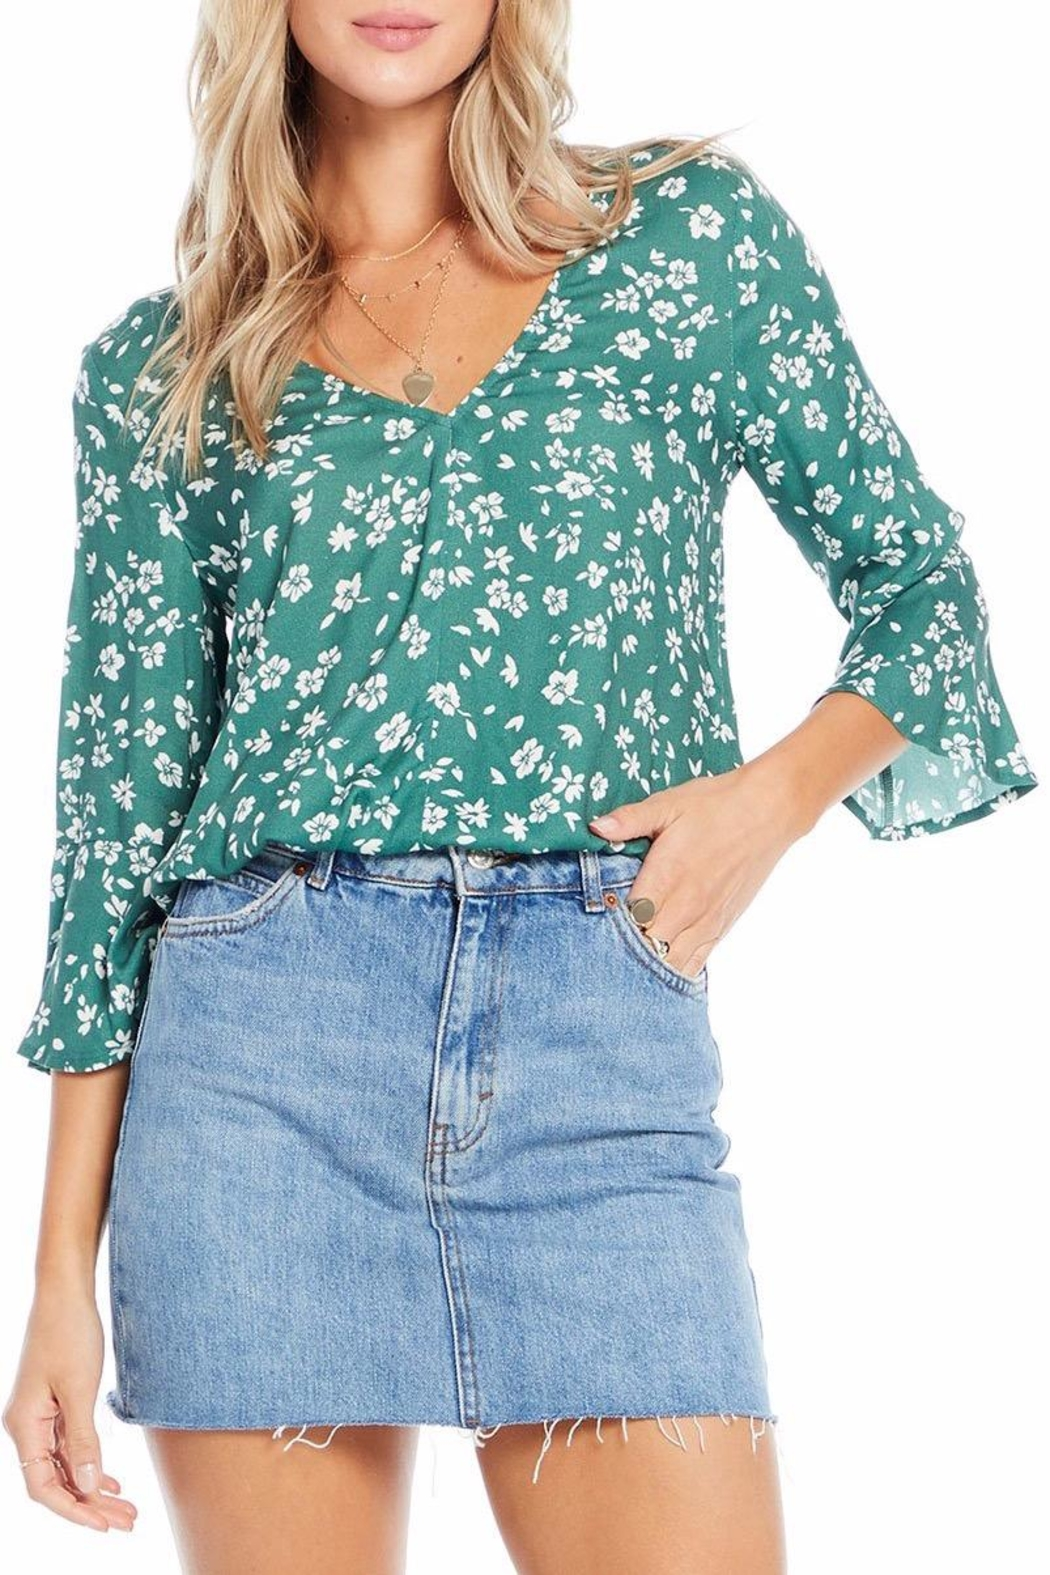 Saltwater Luxe Evergreen Floral Blouse - Main Image